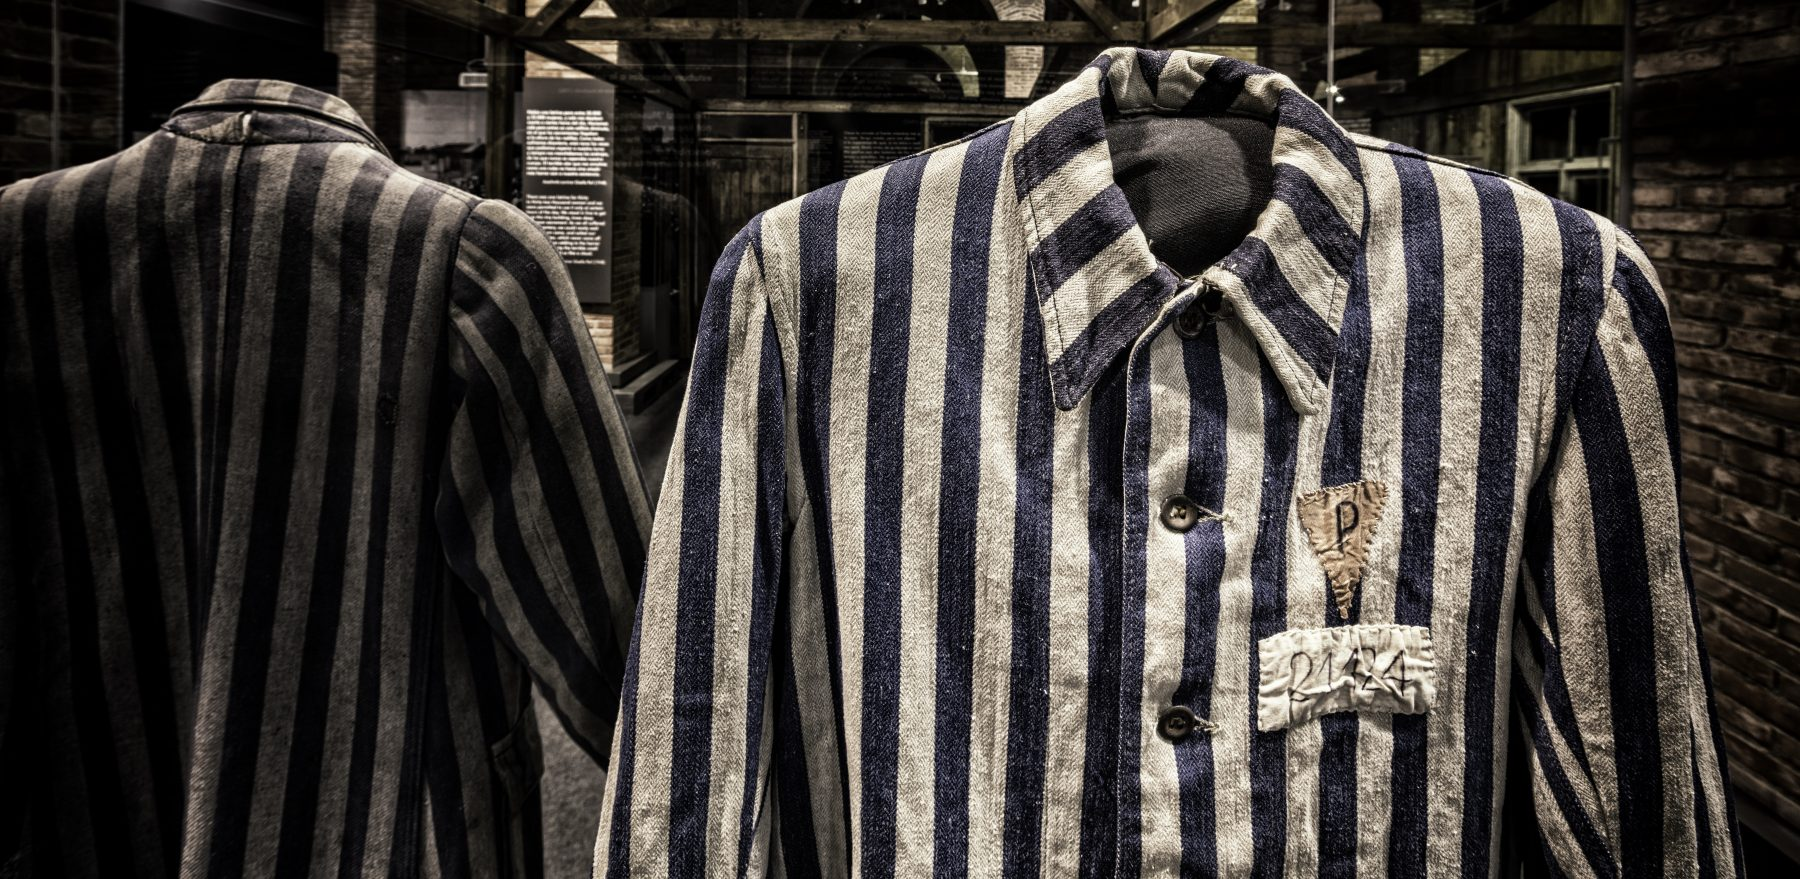 Most Comprehensive Holocaust Exhibition about Auschwitz Opens at Museum of Jewish Heritage